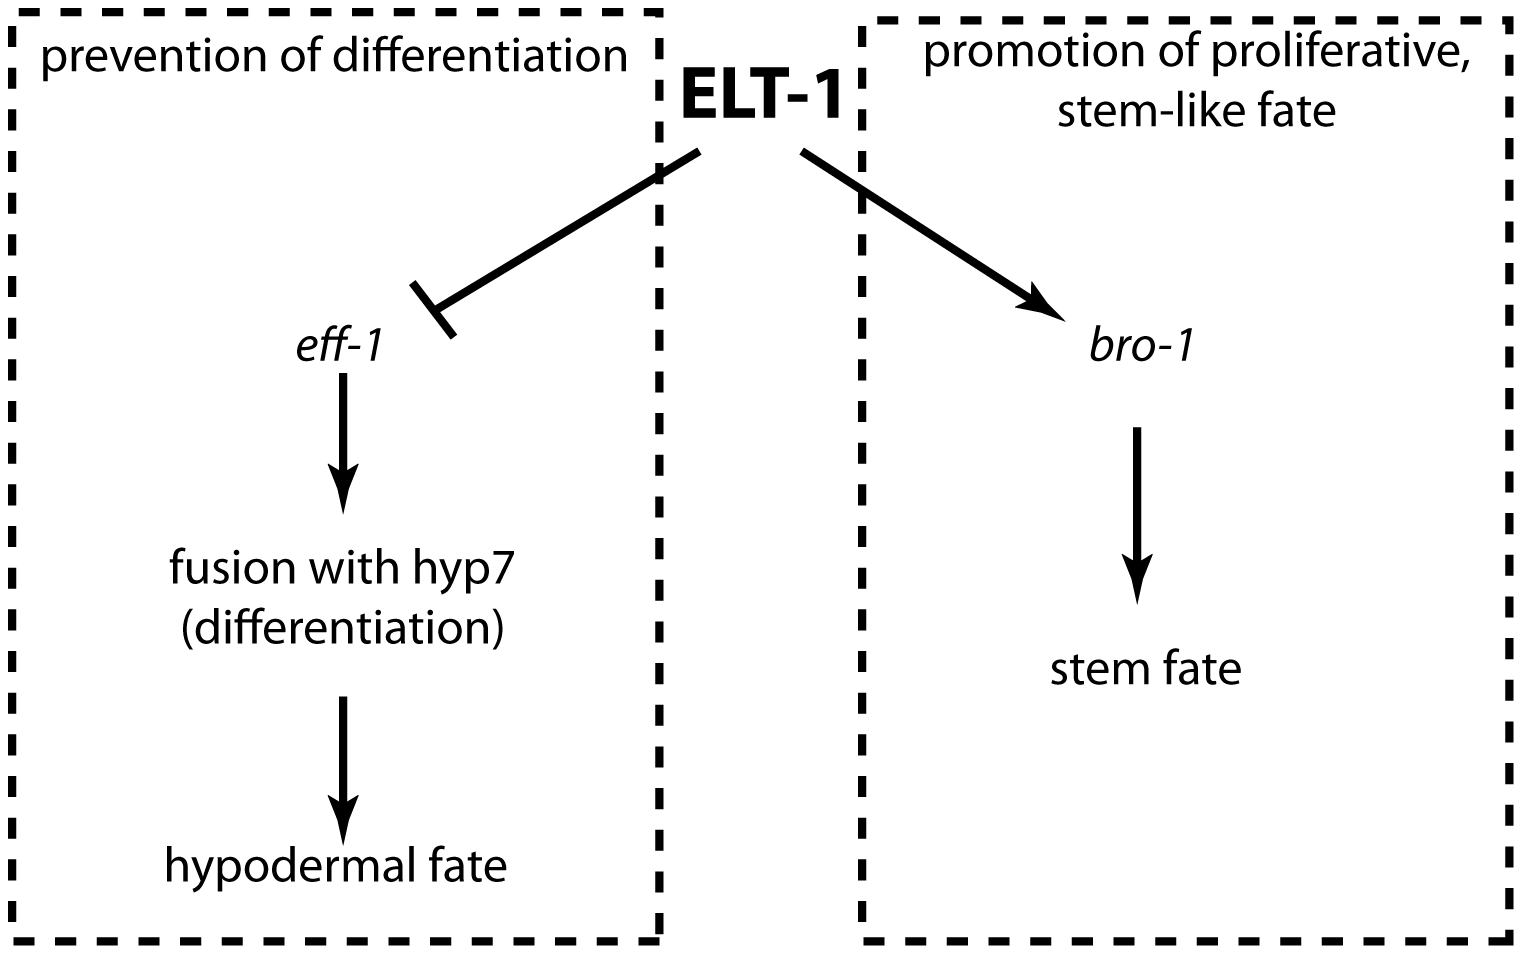 ELT-1 maintains the seam stem cell-like fate by promoting cell proliferation and preventing inappropriate differentiation.